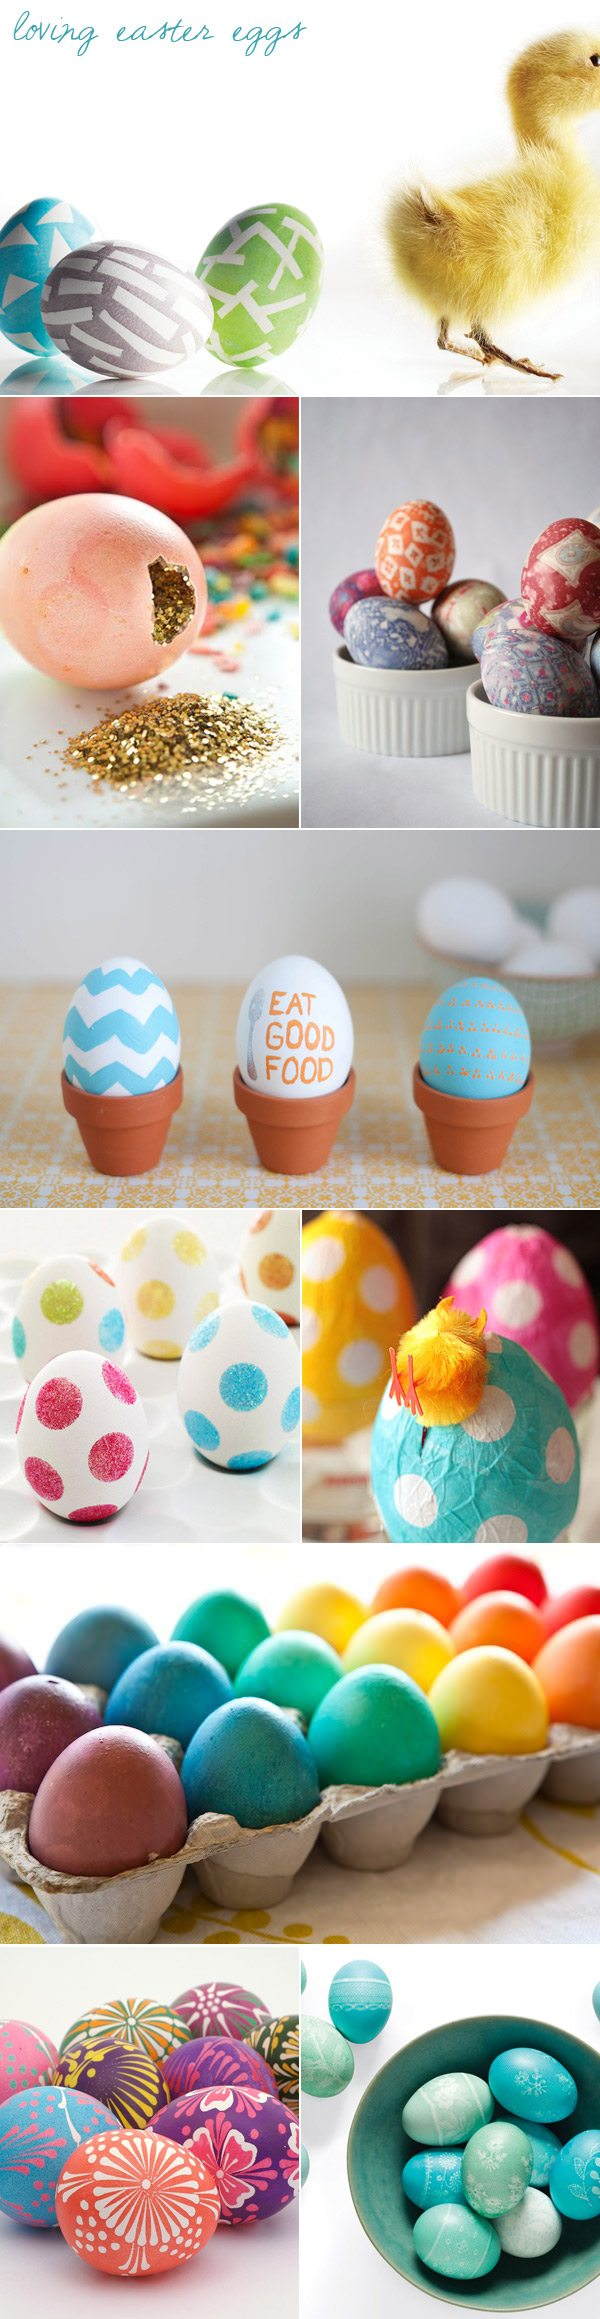 52 Easy Egg Decorating Ideas to Get You Egg-cited for Easter. Go beyond the traditional dyed eggs with these truly creative Easter egg ideas.